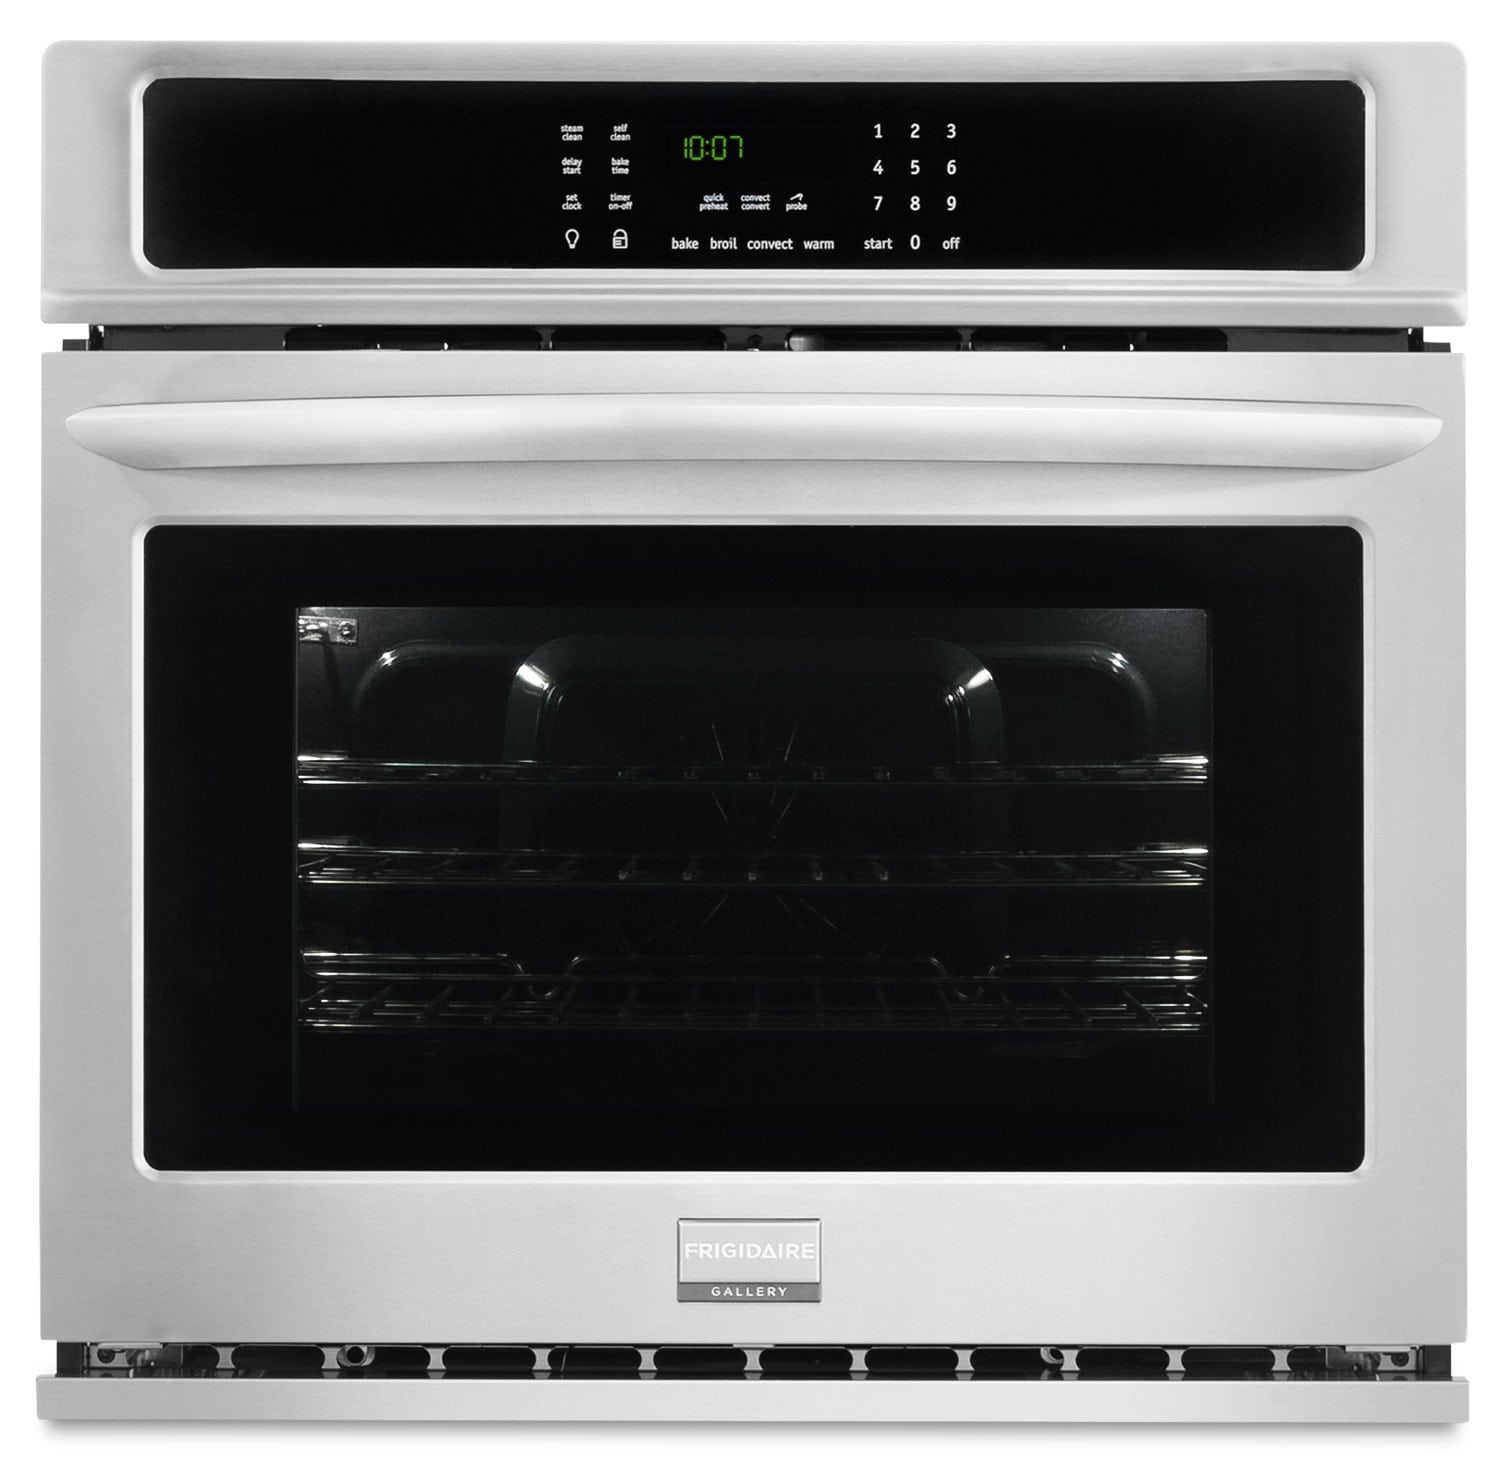 Cooking Products - Frigidaire Gallery 4.6 Cu. Ft. Single Wall Oven – Stainless Steel